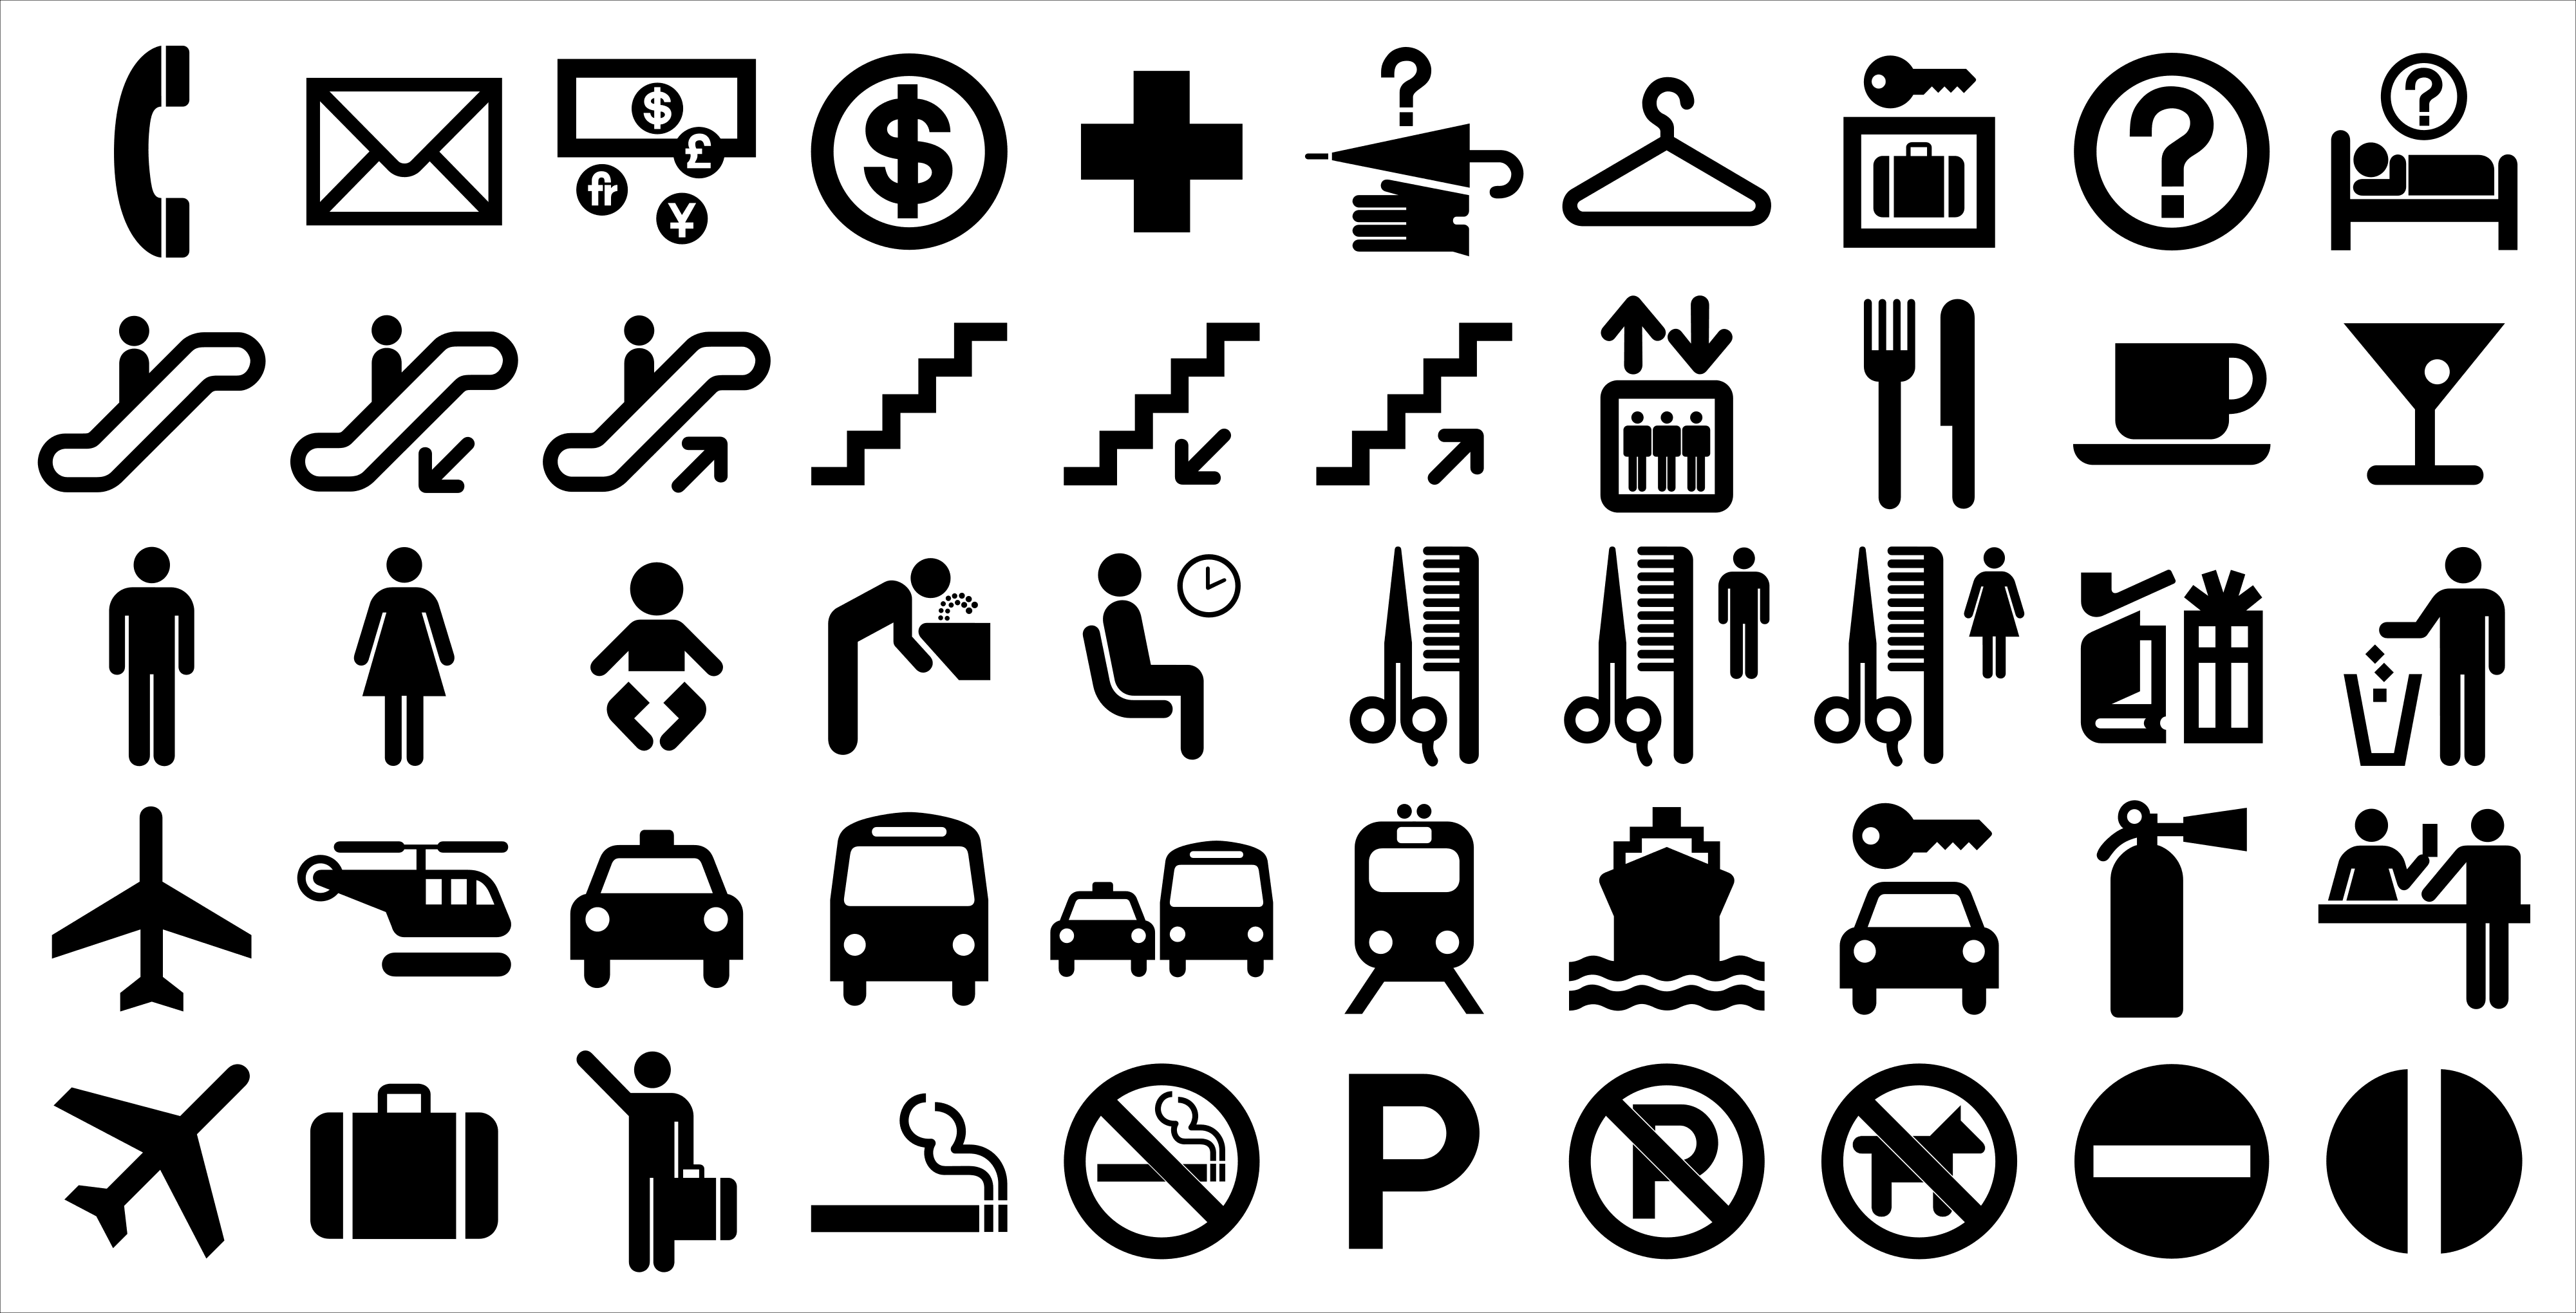 DOT symbols designed by the AIGA